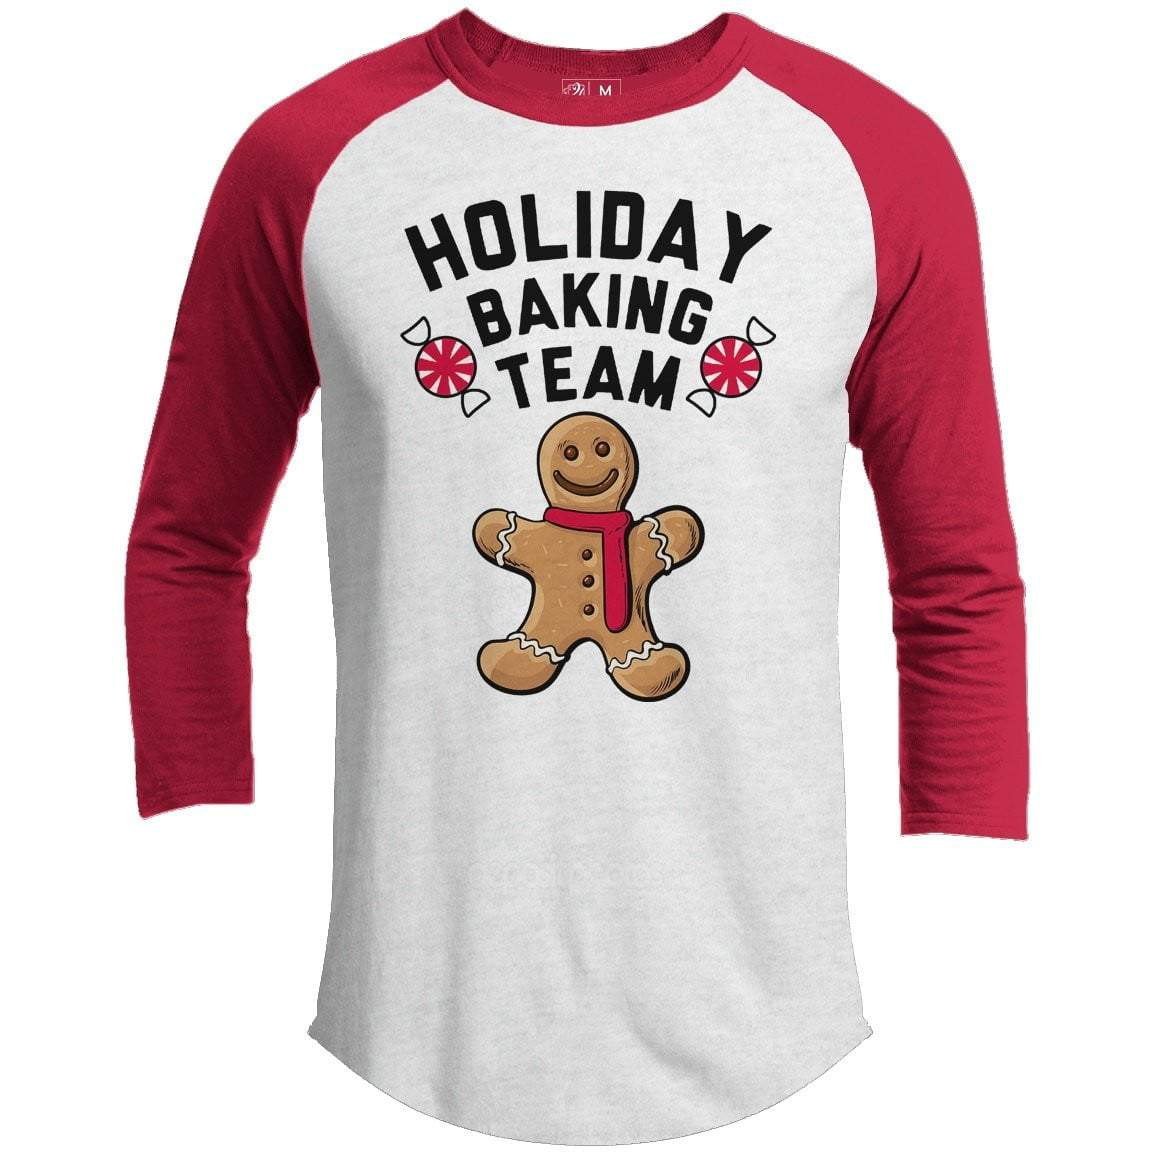 Holiday Baking Team Premium Youth Christmas Raglan